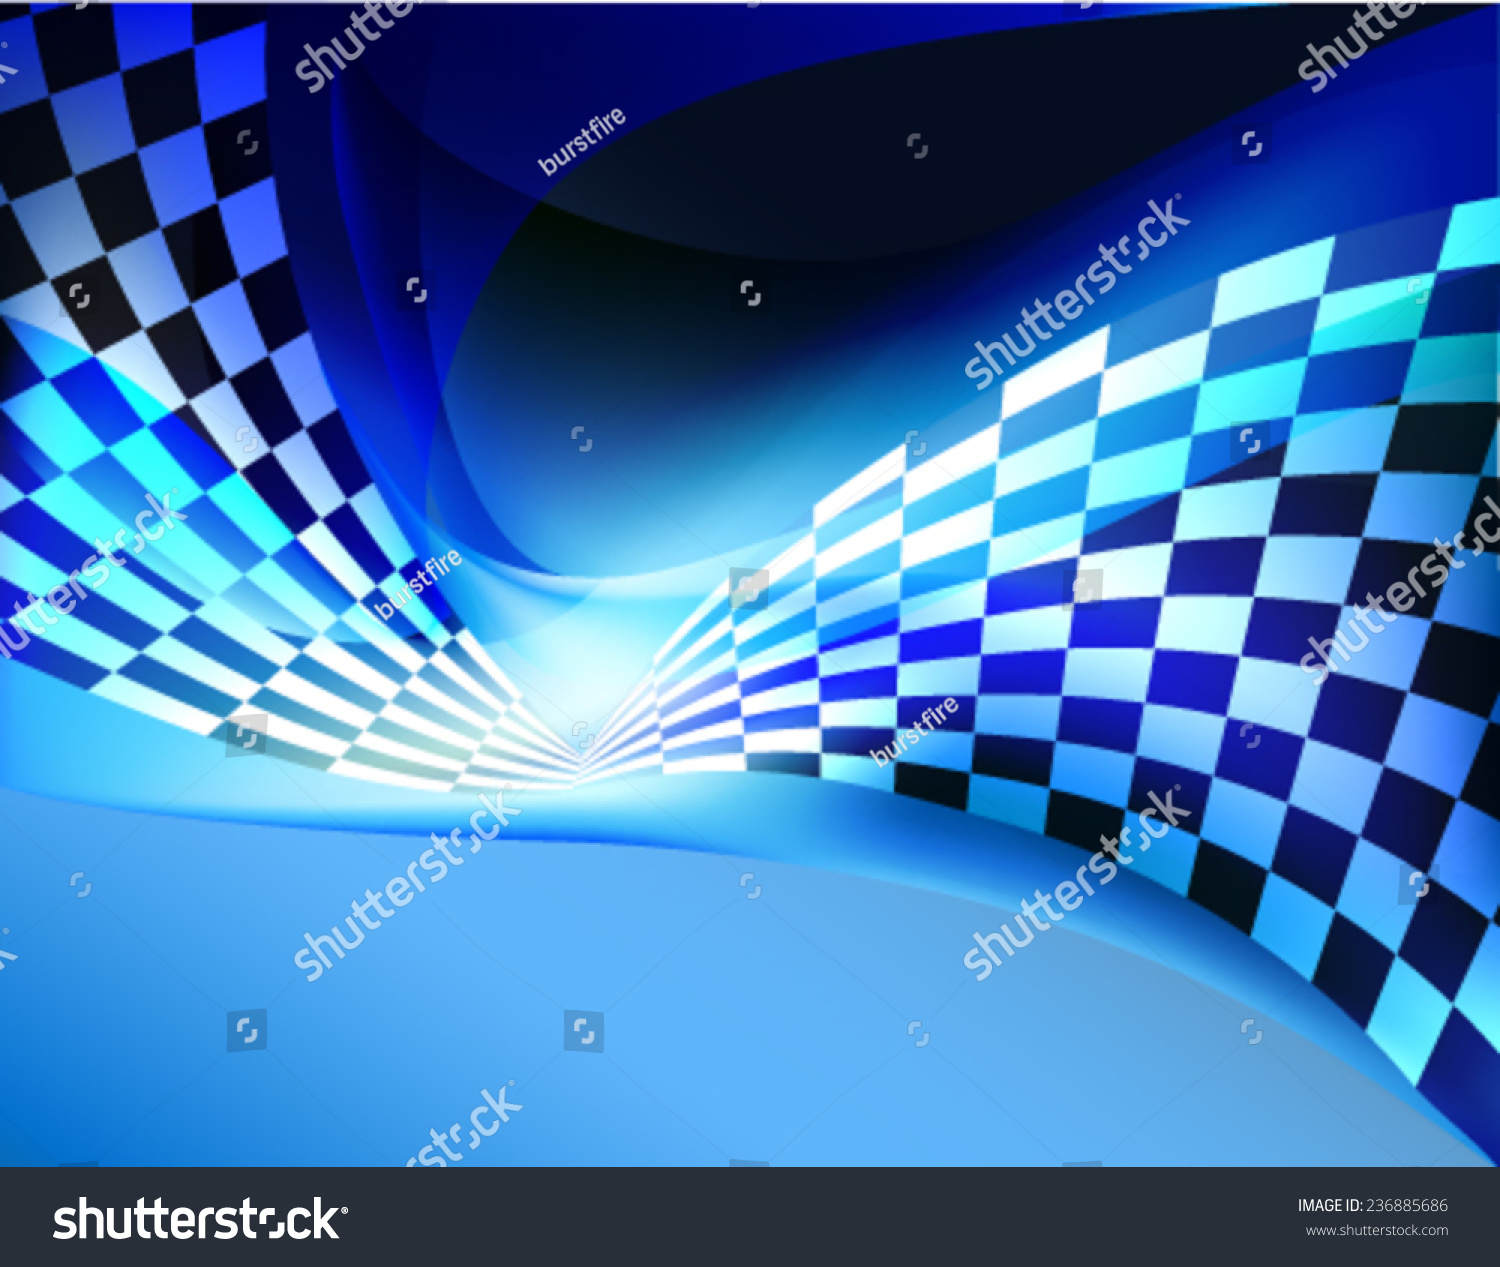 Red checkered background clipart clipground - Racing Background Checkered